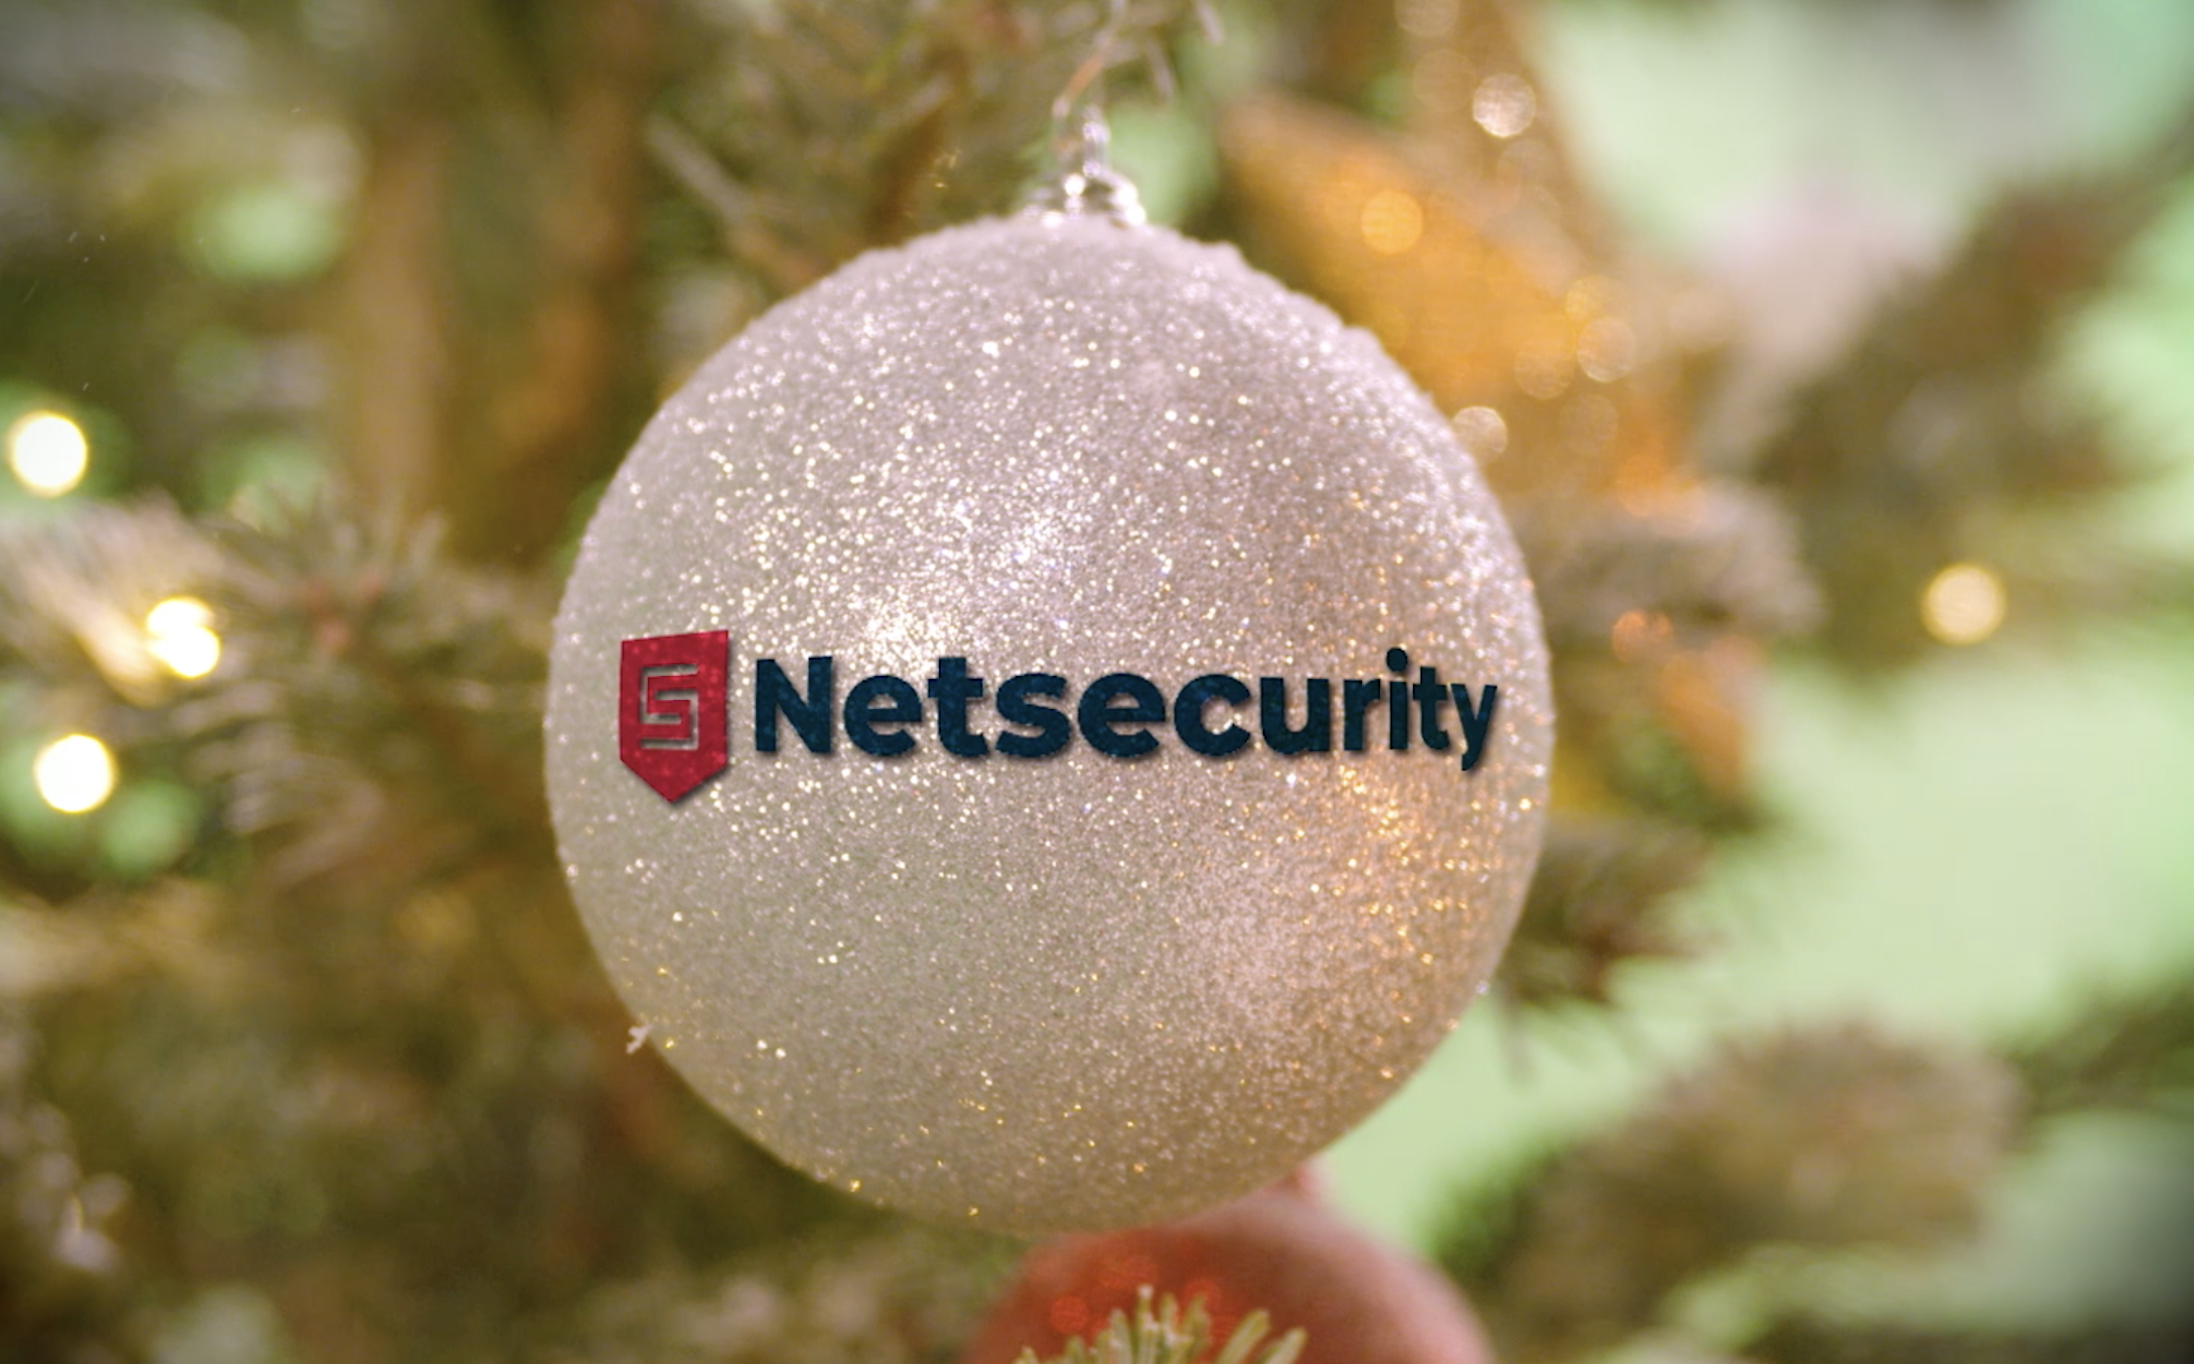 Netsecurity kåret til Prisma Cloud Northern Europe Partner of the Year